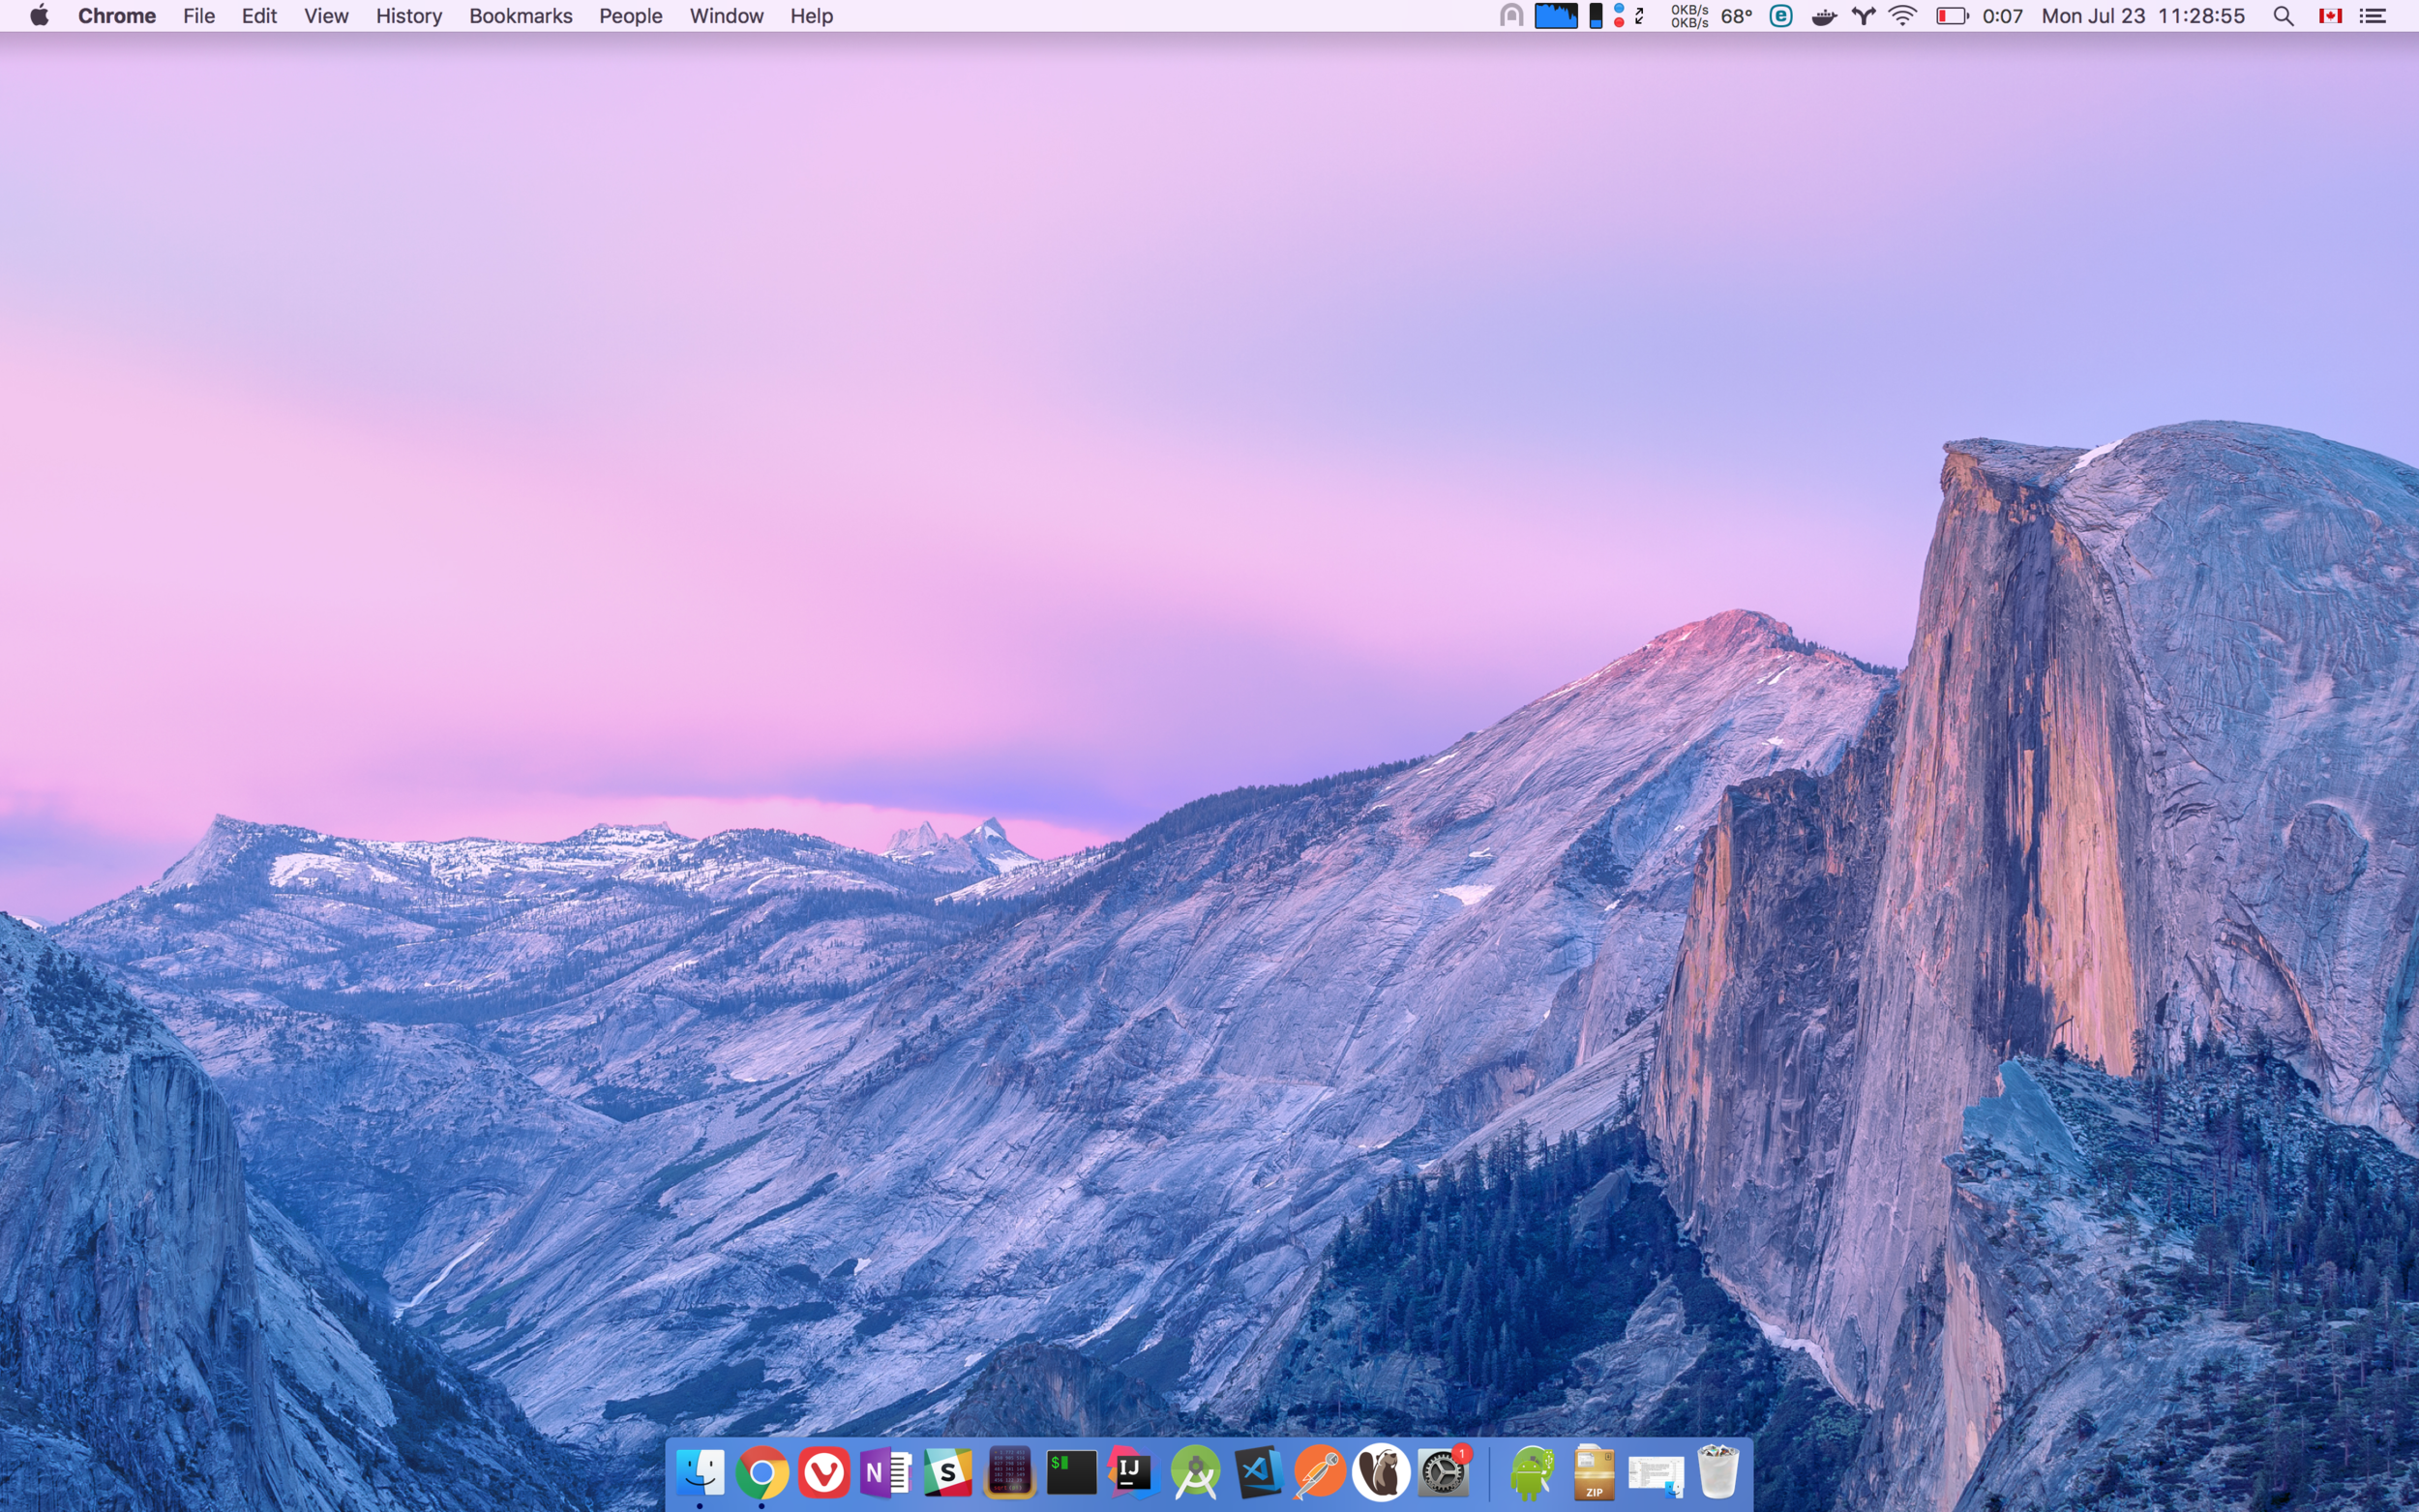 My work macOS setup. I've hardly done any tweaking and it looks pretty great.